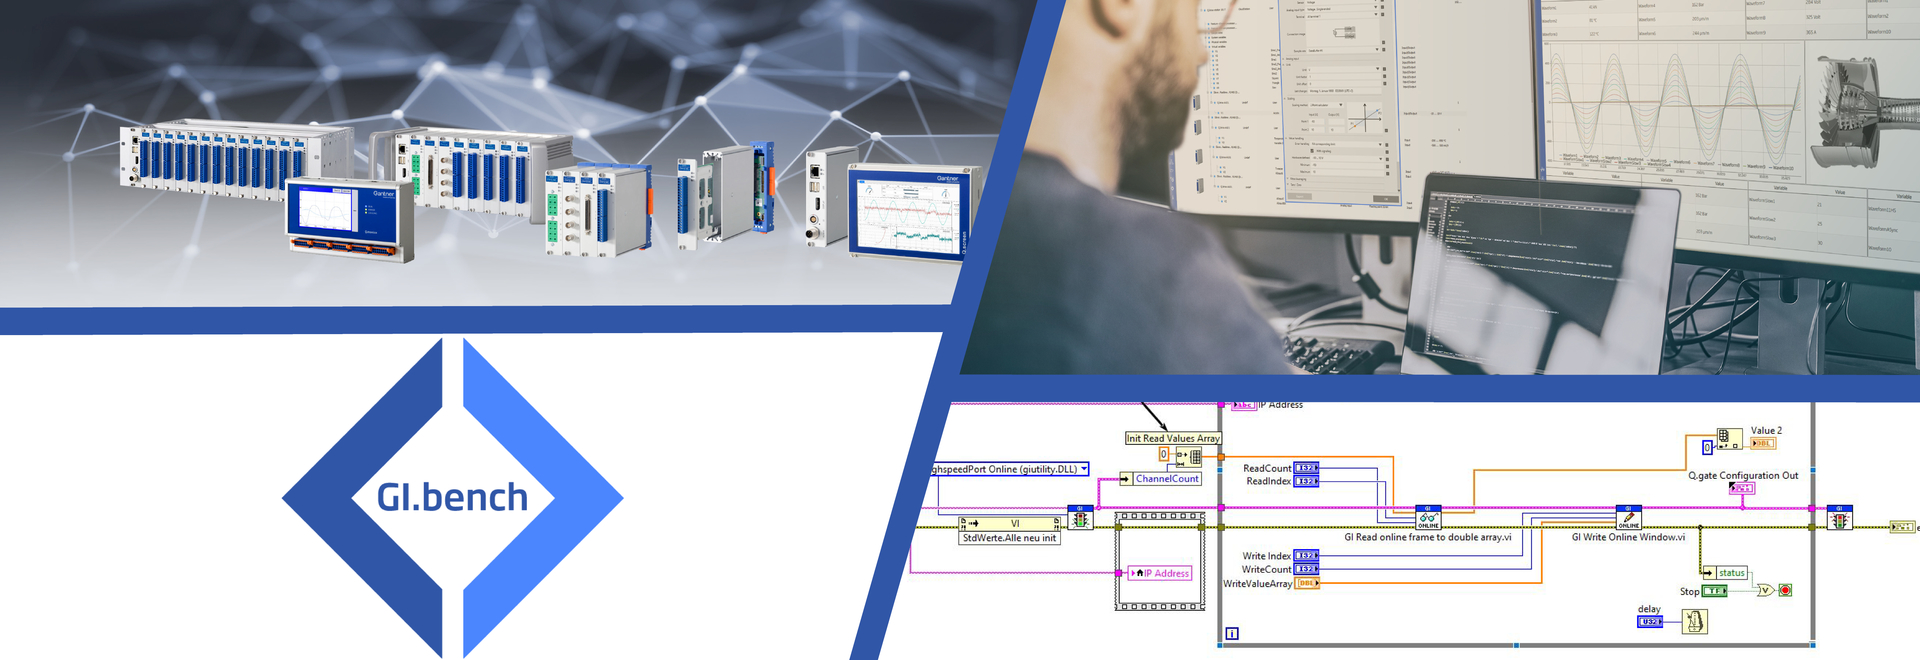 Easy integration of Gantner Instruments product platforms into NI LabVIEW